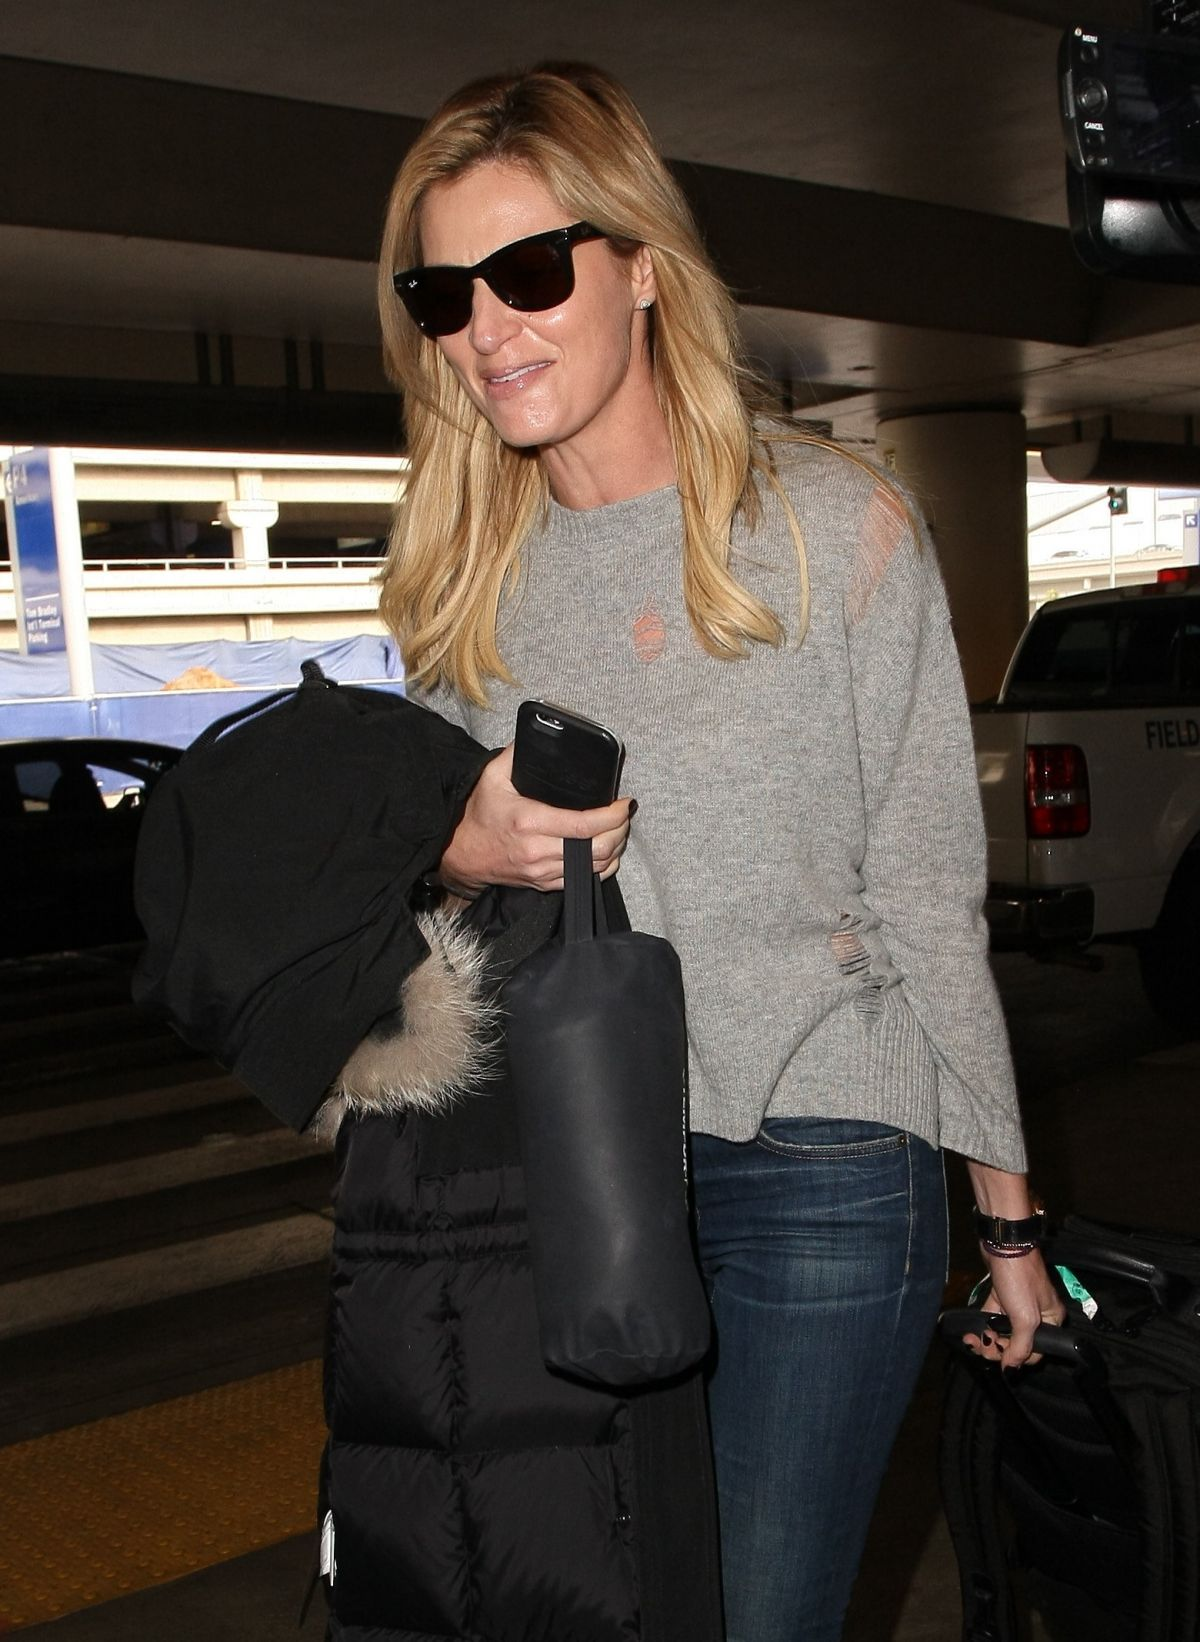 ERIN ANDREWS at Los Angeles Intenational Airport 12/12/2016